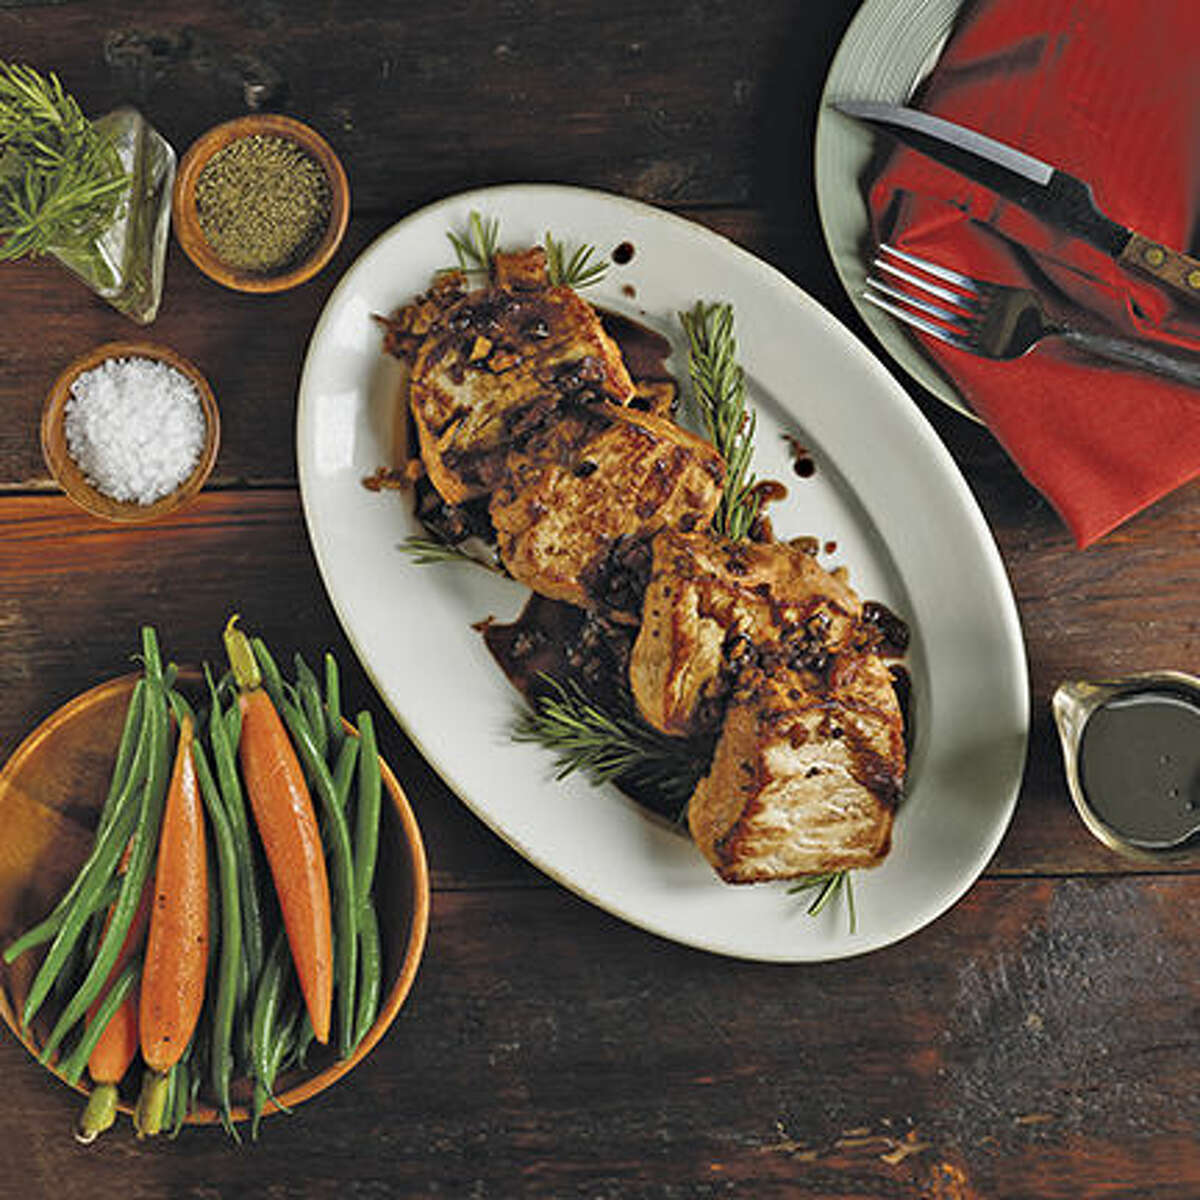 Fast Family Meals as Easy as 1-2-3